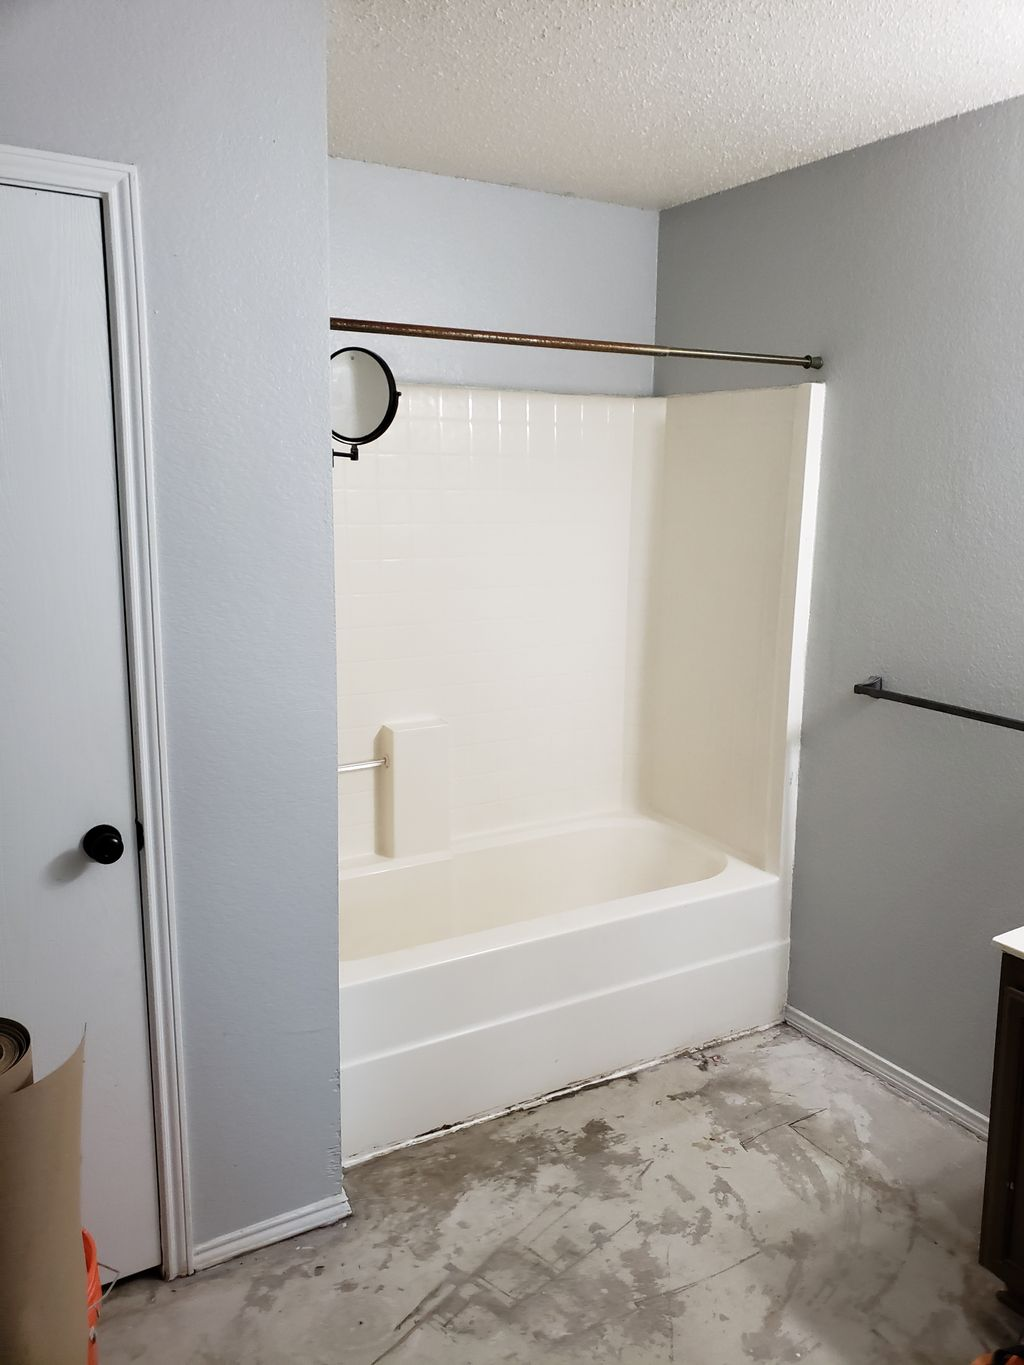 Light tub to shower conversion